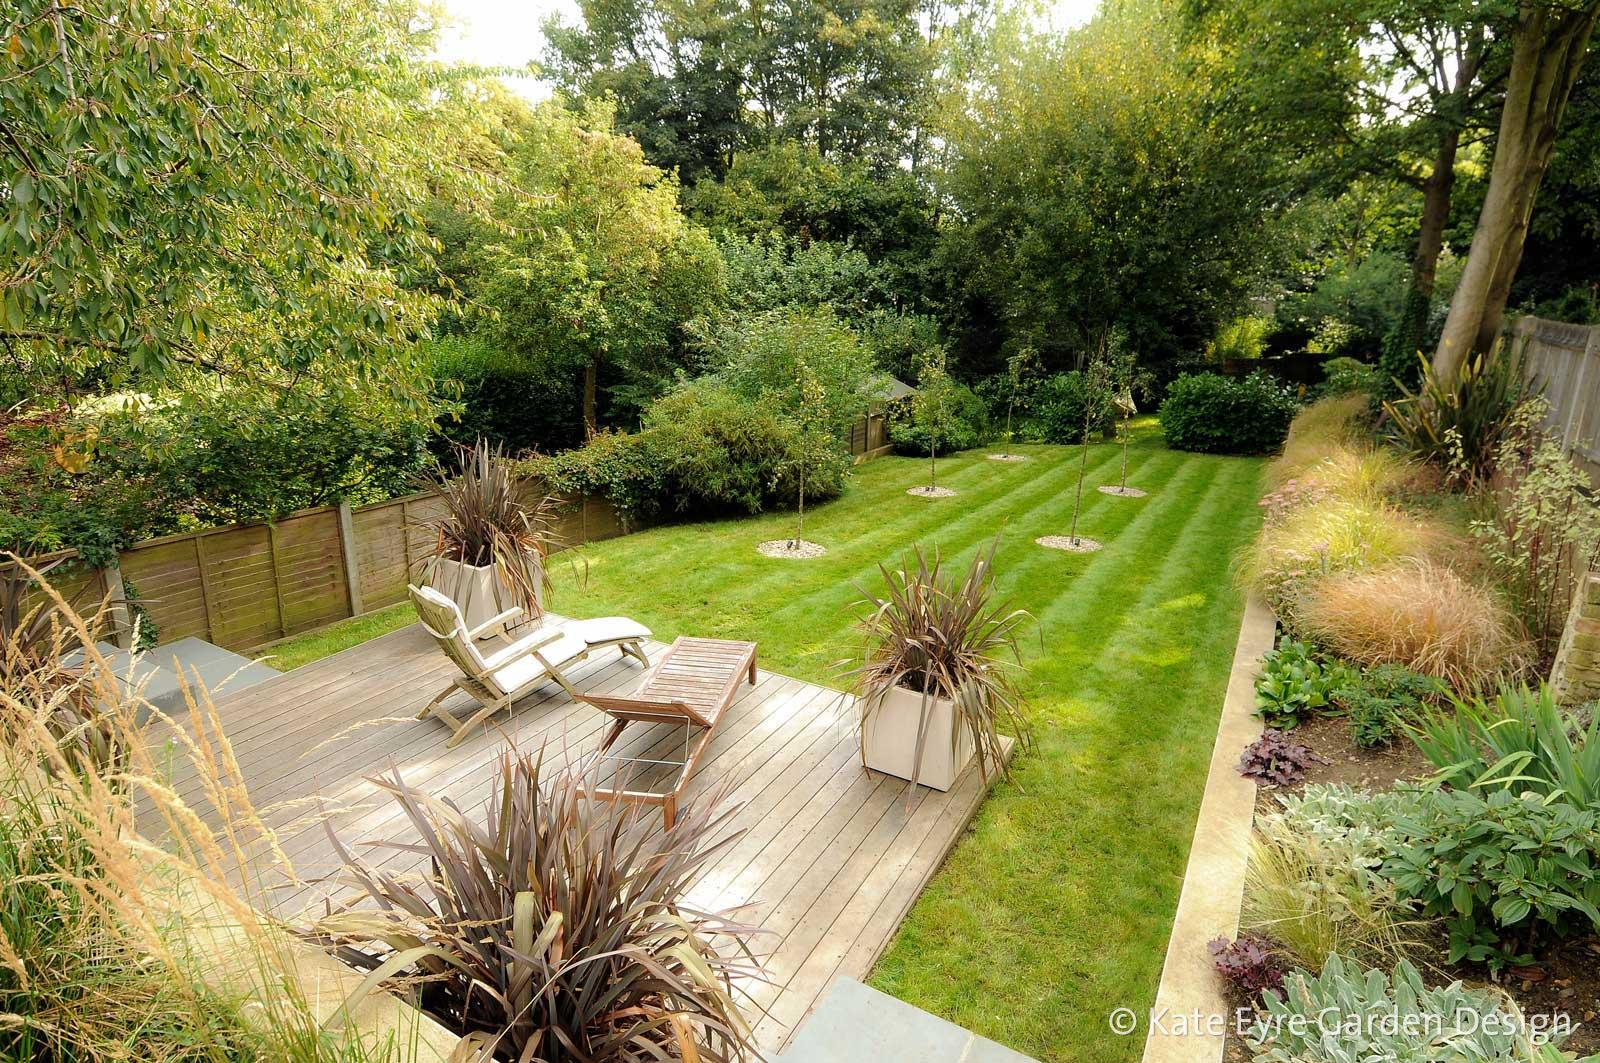 Garden design in crystal palace south east london for Garden designs images pictures